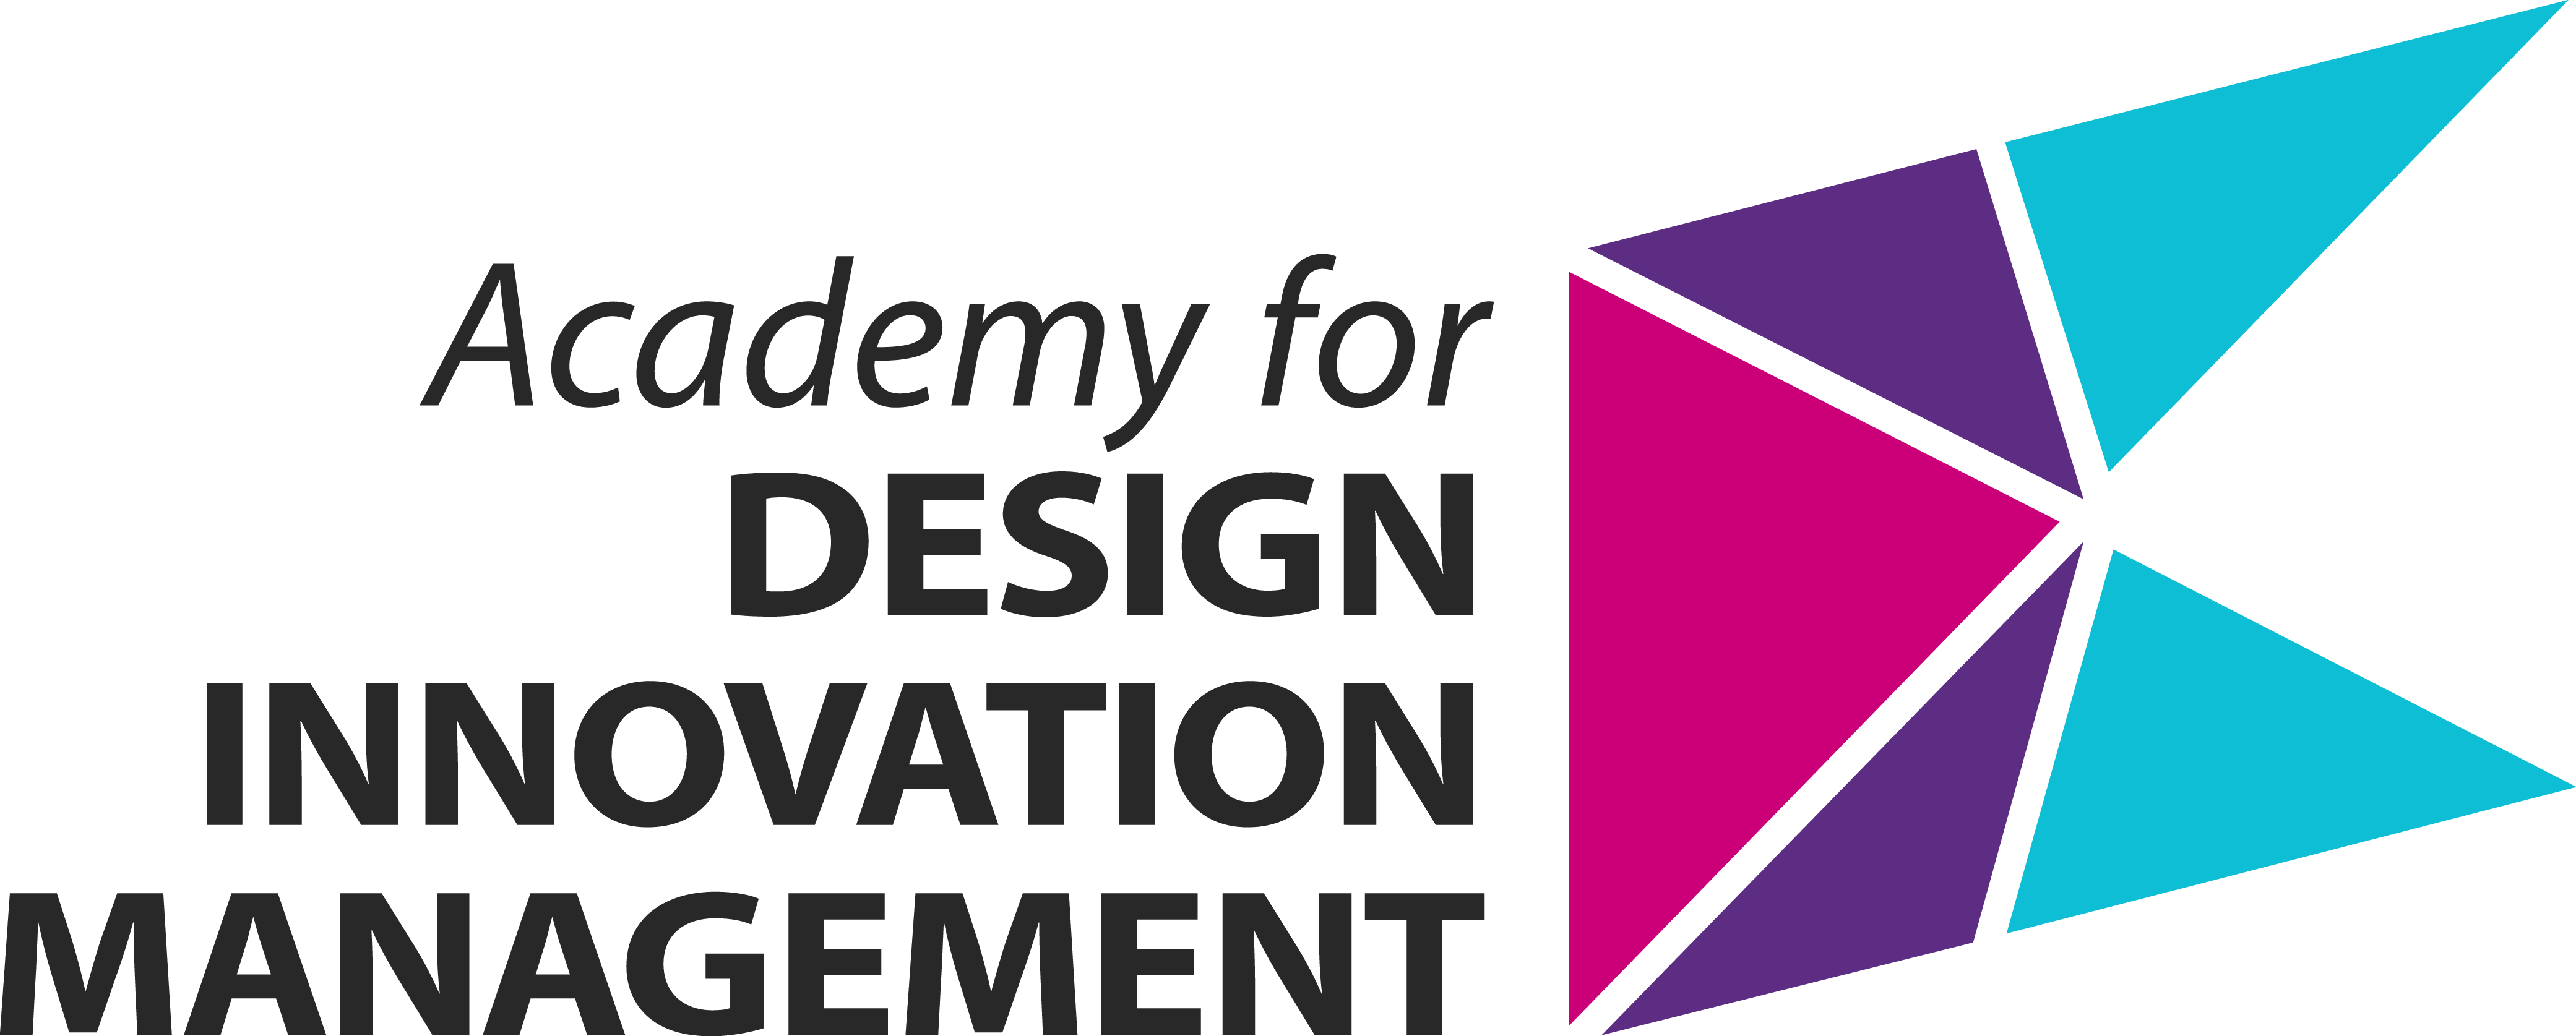 Academy for Design Innovation Management logo with the text